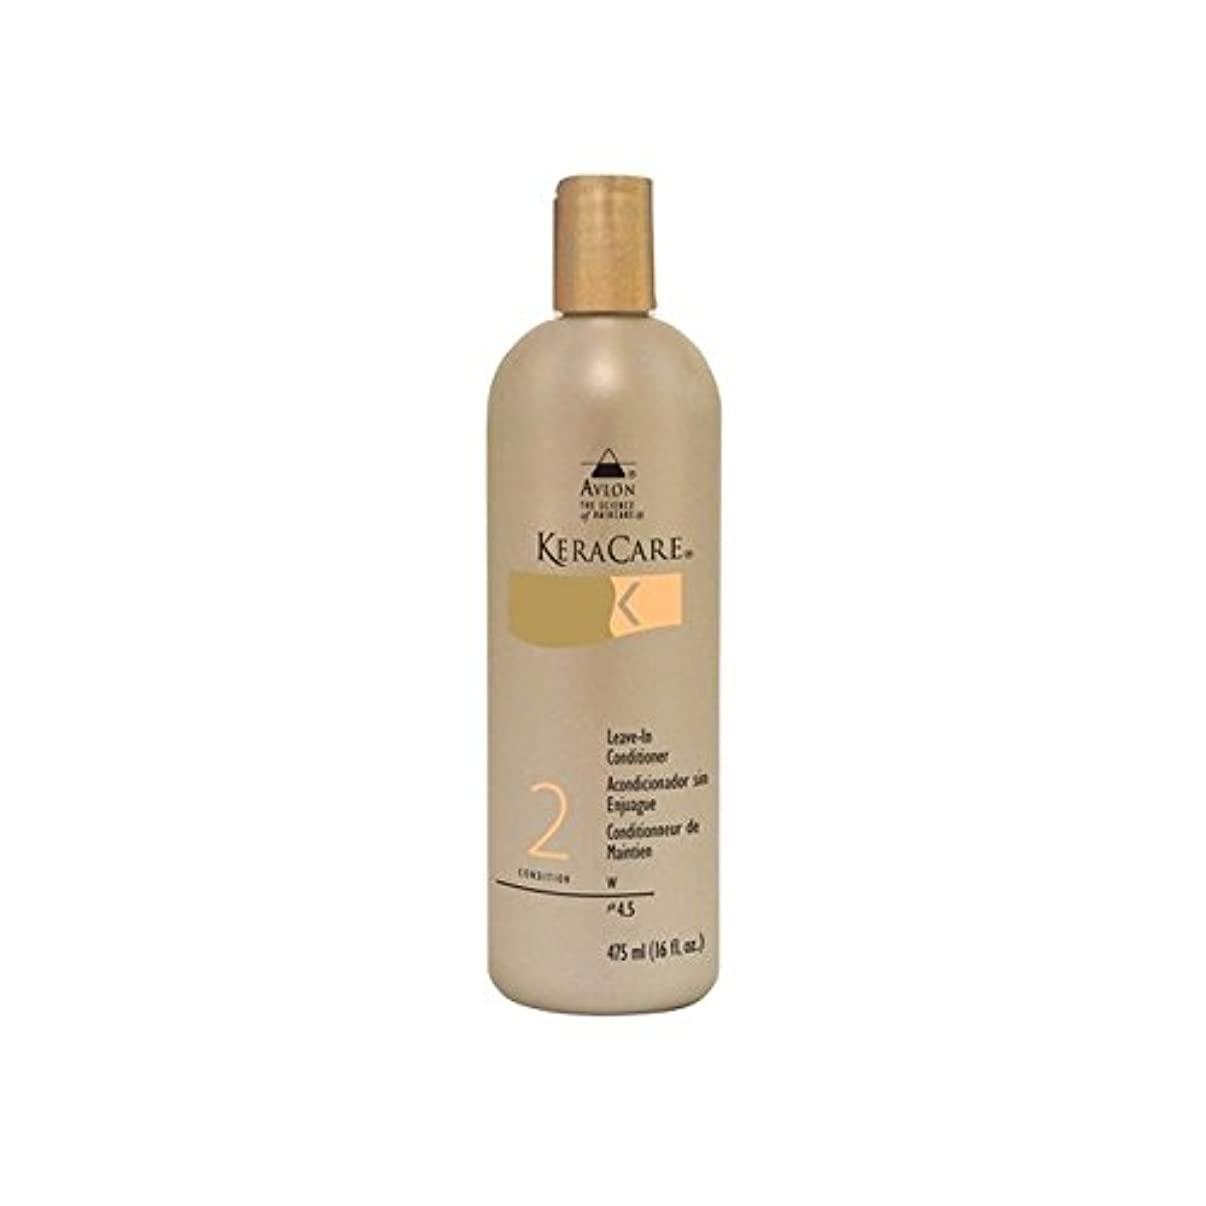 Keracare Leave In Conditioner (475ml) (Pack of 6) - コンディショナーで休暇(475ミリリットル) x6 [並行輸入品]